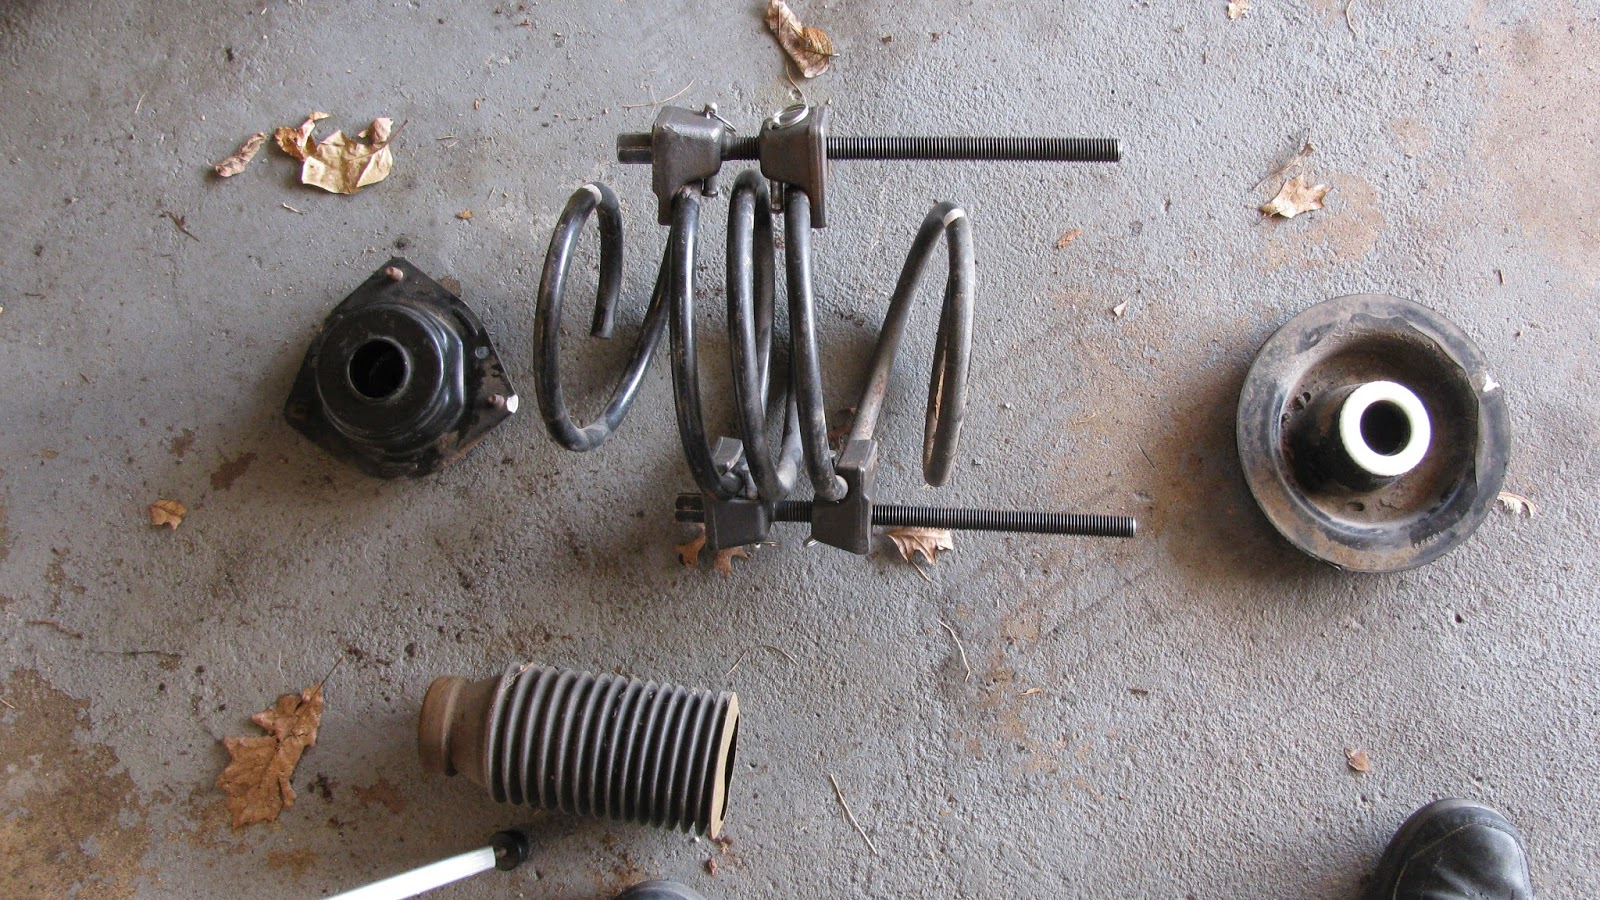 6 remove the strut components the cap the jonce bumper the spring the boot and the lower rubber isolator check the parts for condition and if ok clean